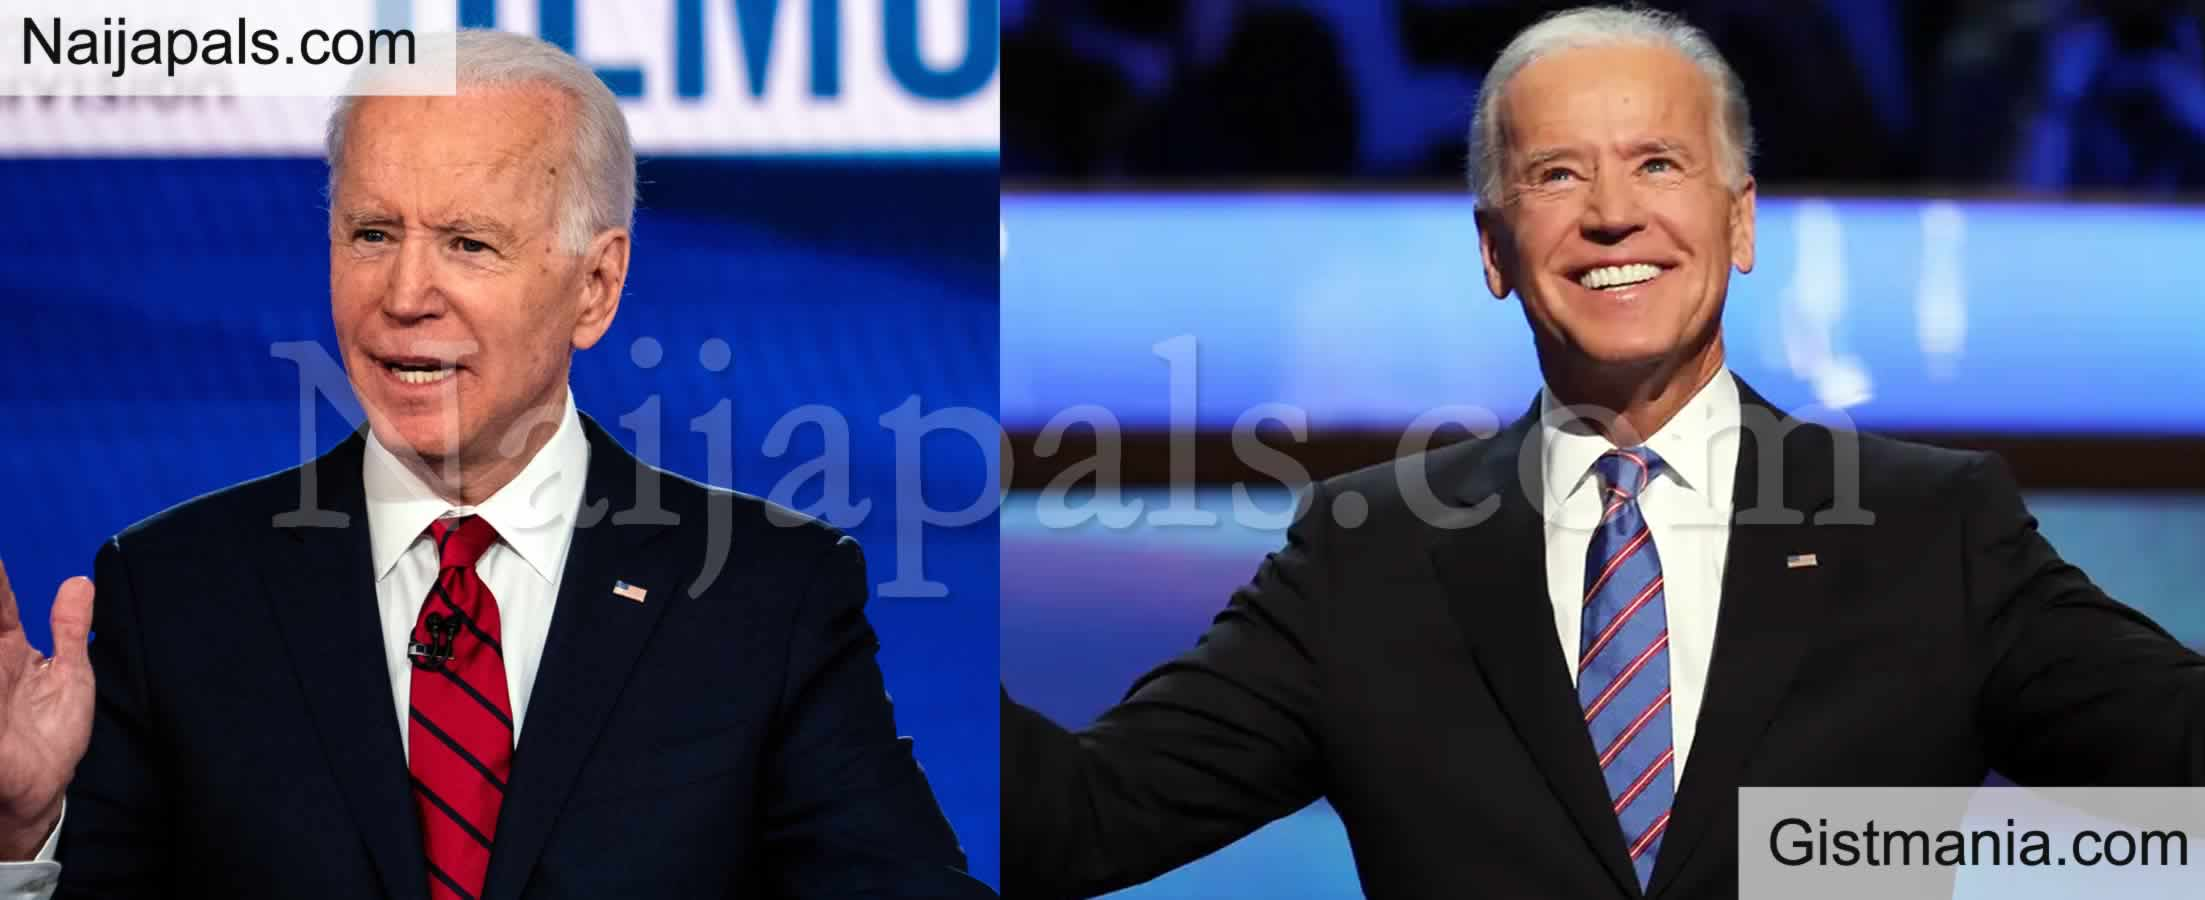 <img alt='.' class='lazyload' data-src='https://img.gistmania.com/emot/news.gif' /> <b>America's President Elect Joe Biden Names His Cabinet Ahead of 2021 Swearing-in</b>